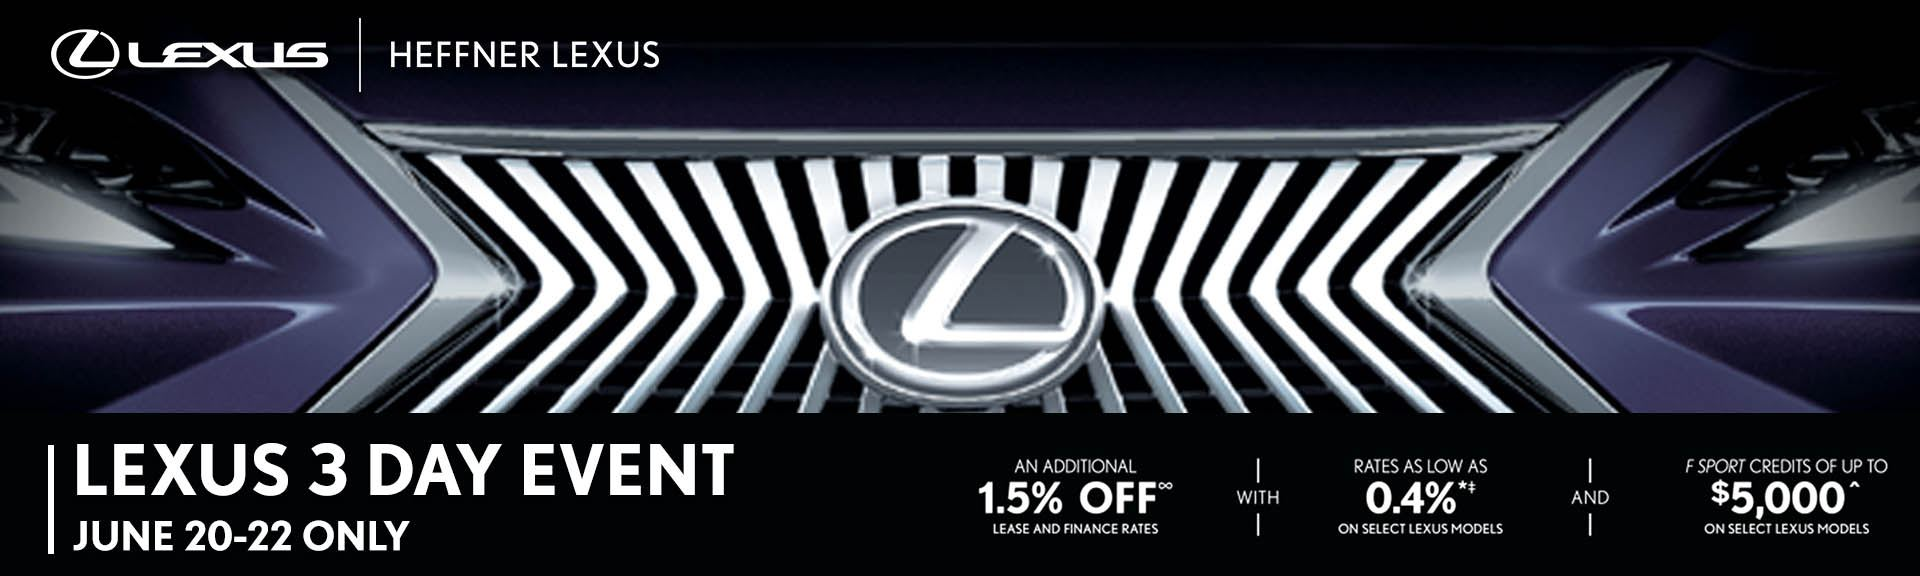 Lexus 3 Day Event. June 20-22 only